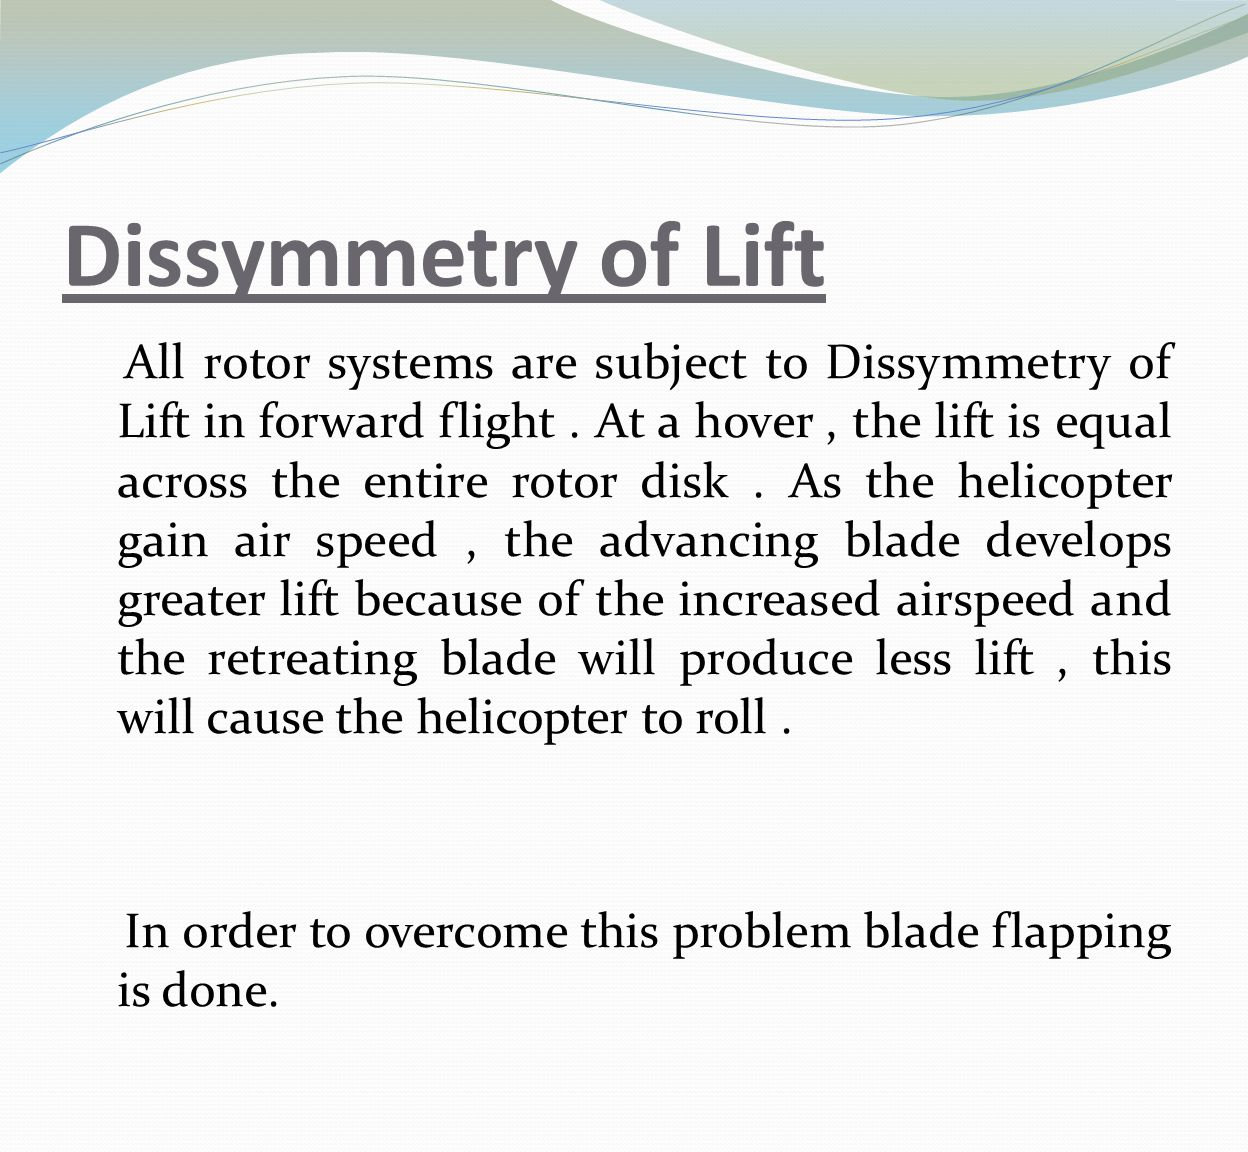 Dissymmetry of Lift